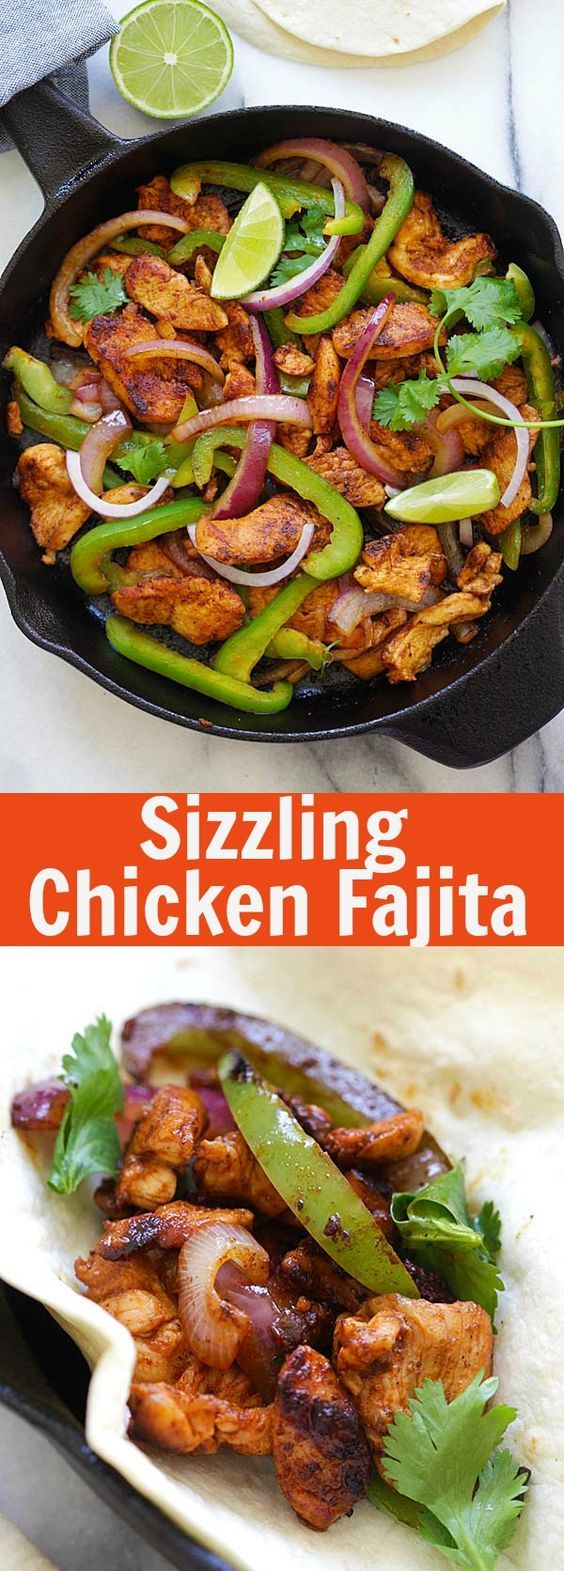 750 best mexican southwestern tex mex food images on pinterest sizzling chicken fajita best and easiest homemade chicken fajita on a skillet so flavorful and so much better than mexican restaurants chicken fajitas forumfinder Images